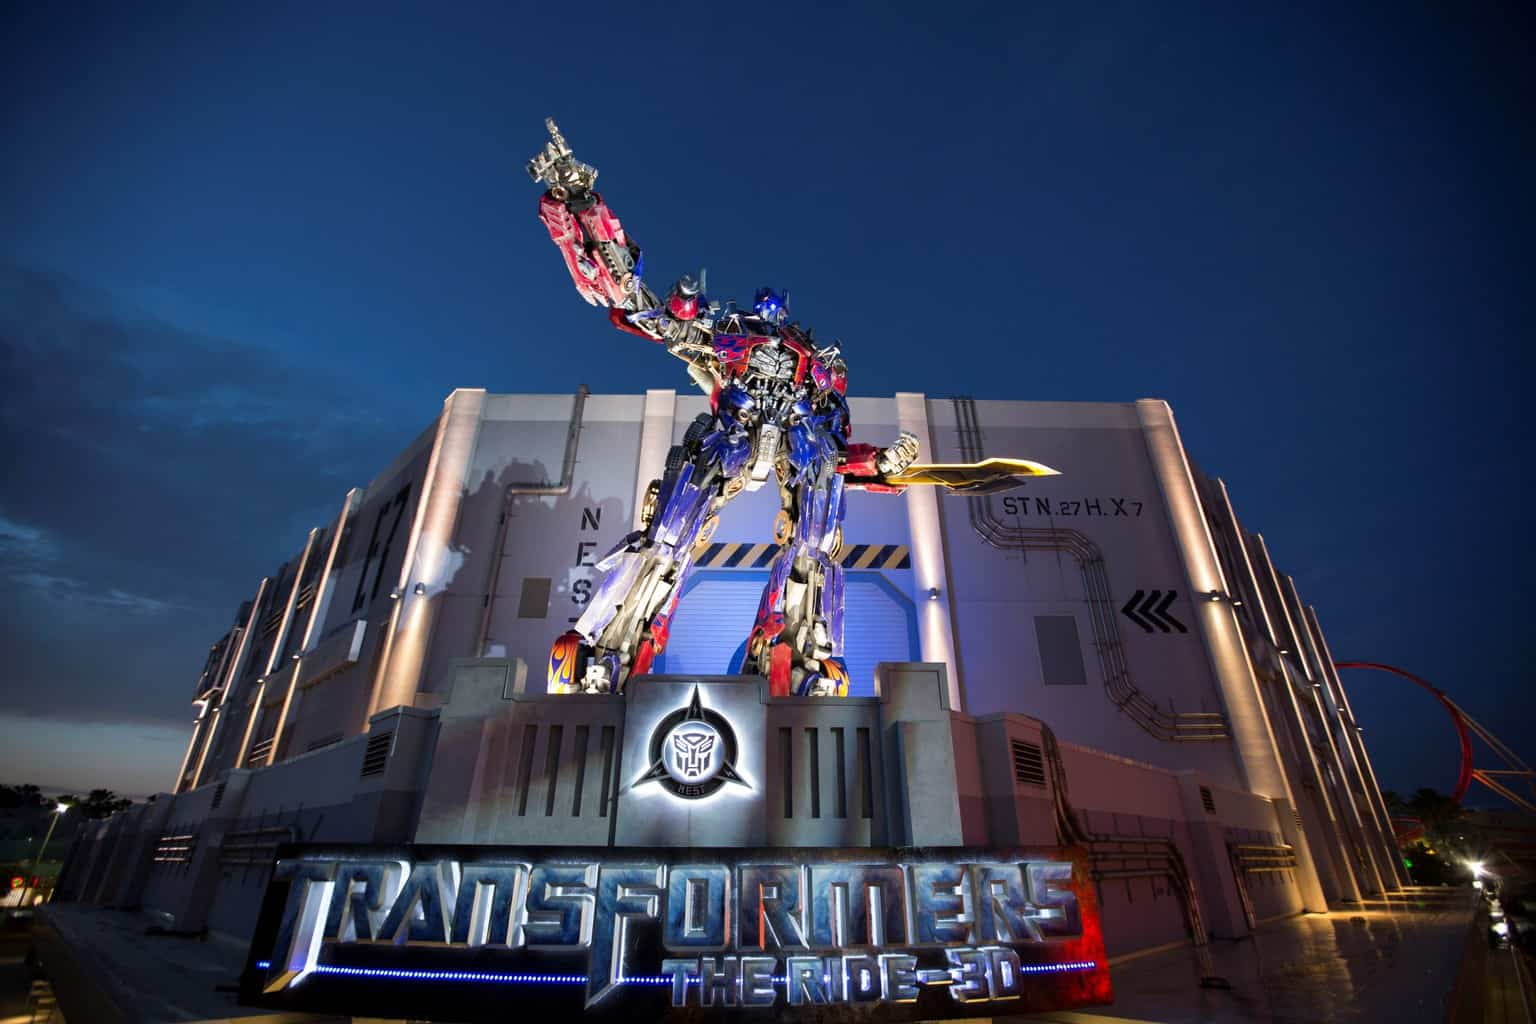 TRANSFORMERS The Ride-3D Reaches One Million Recruitslr